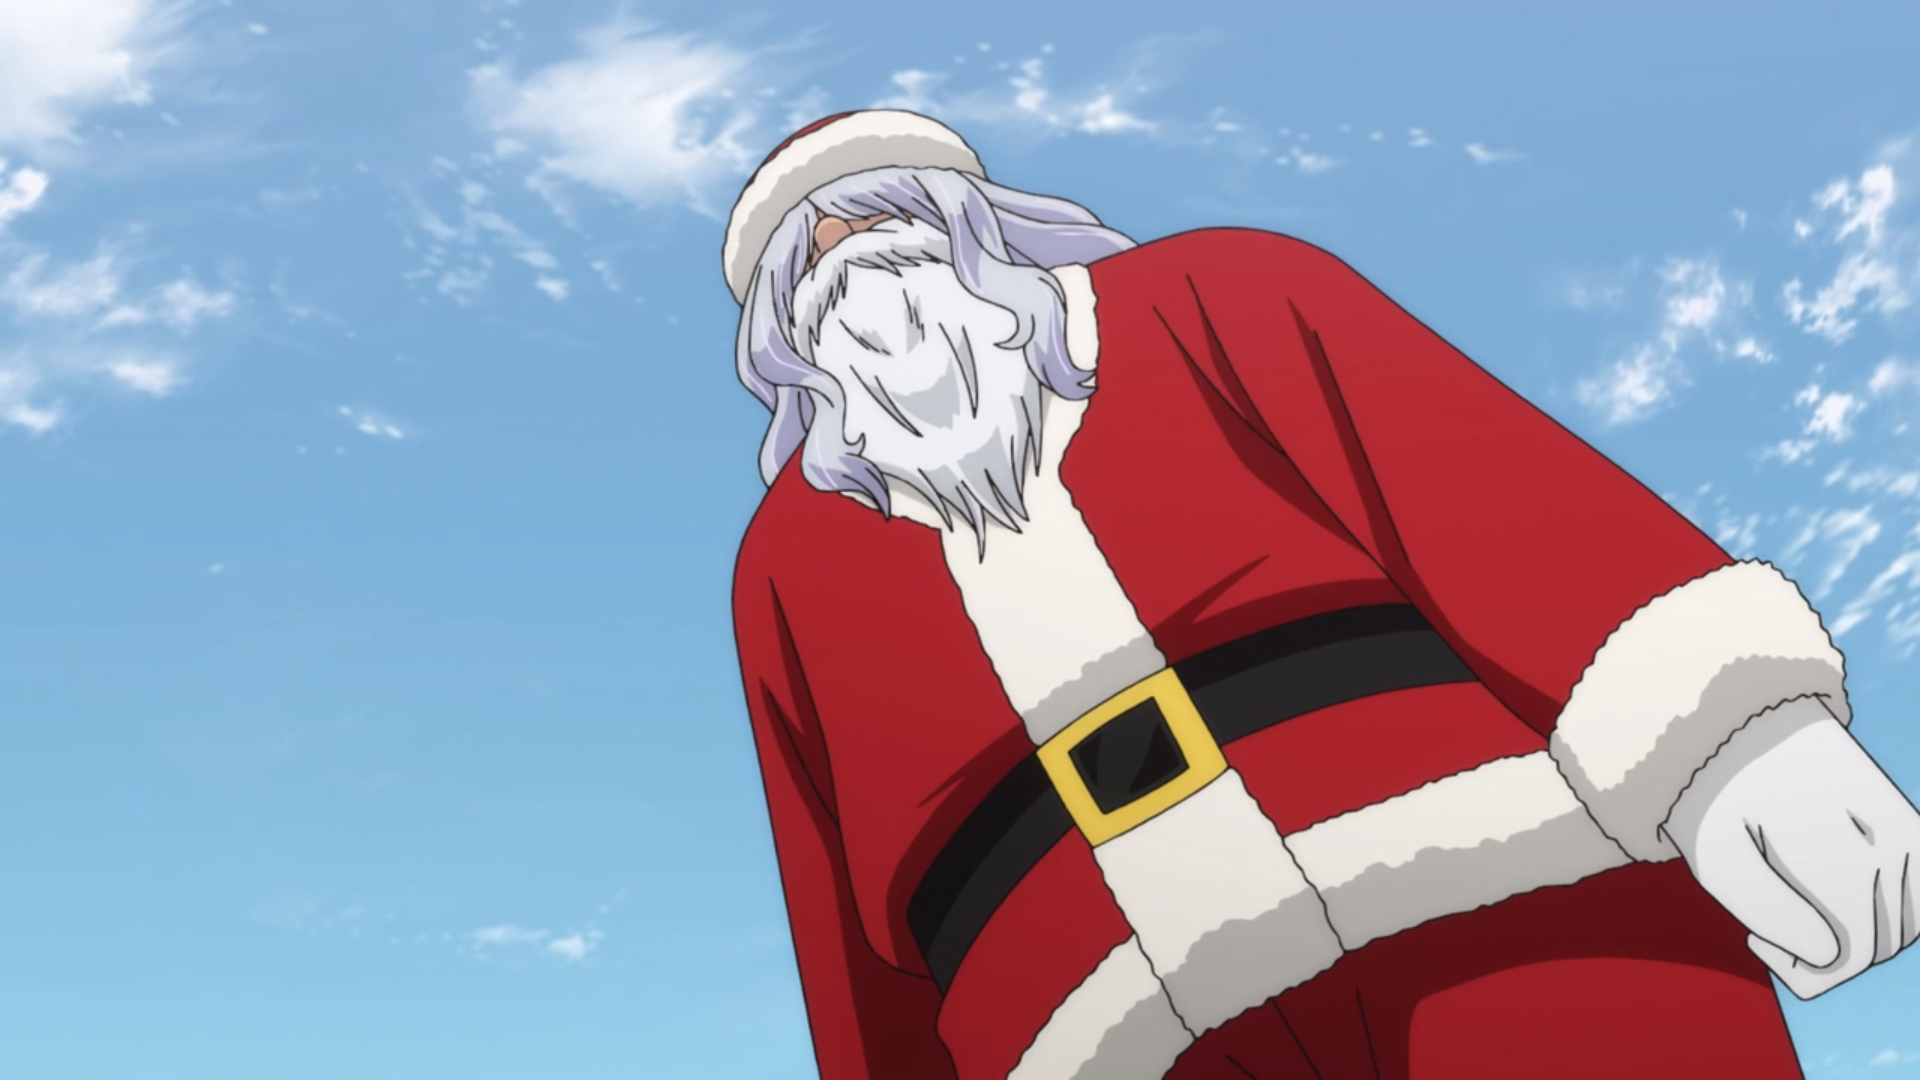 Header image depicting a yokai possessed mall santa